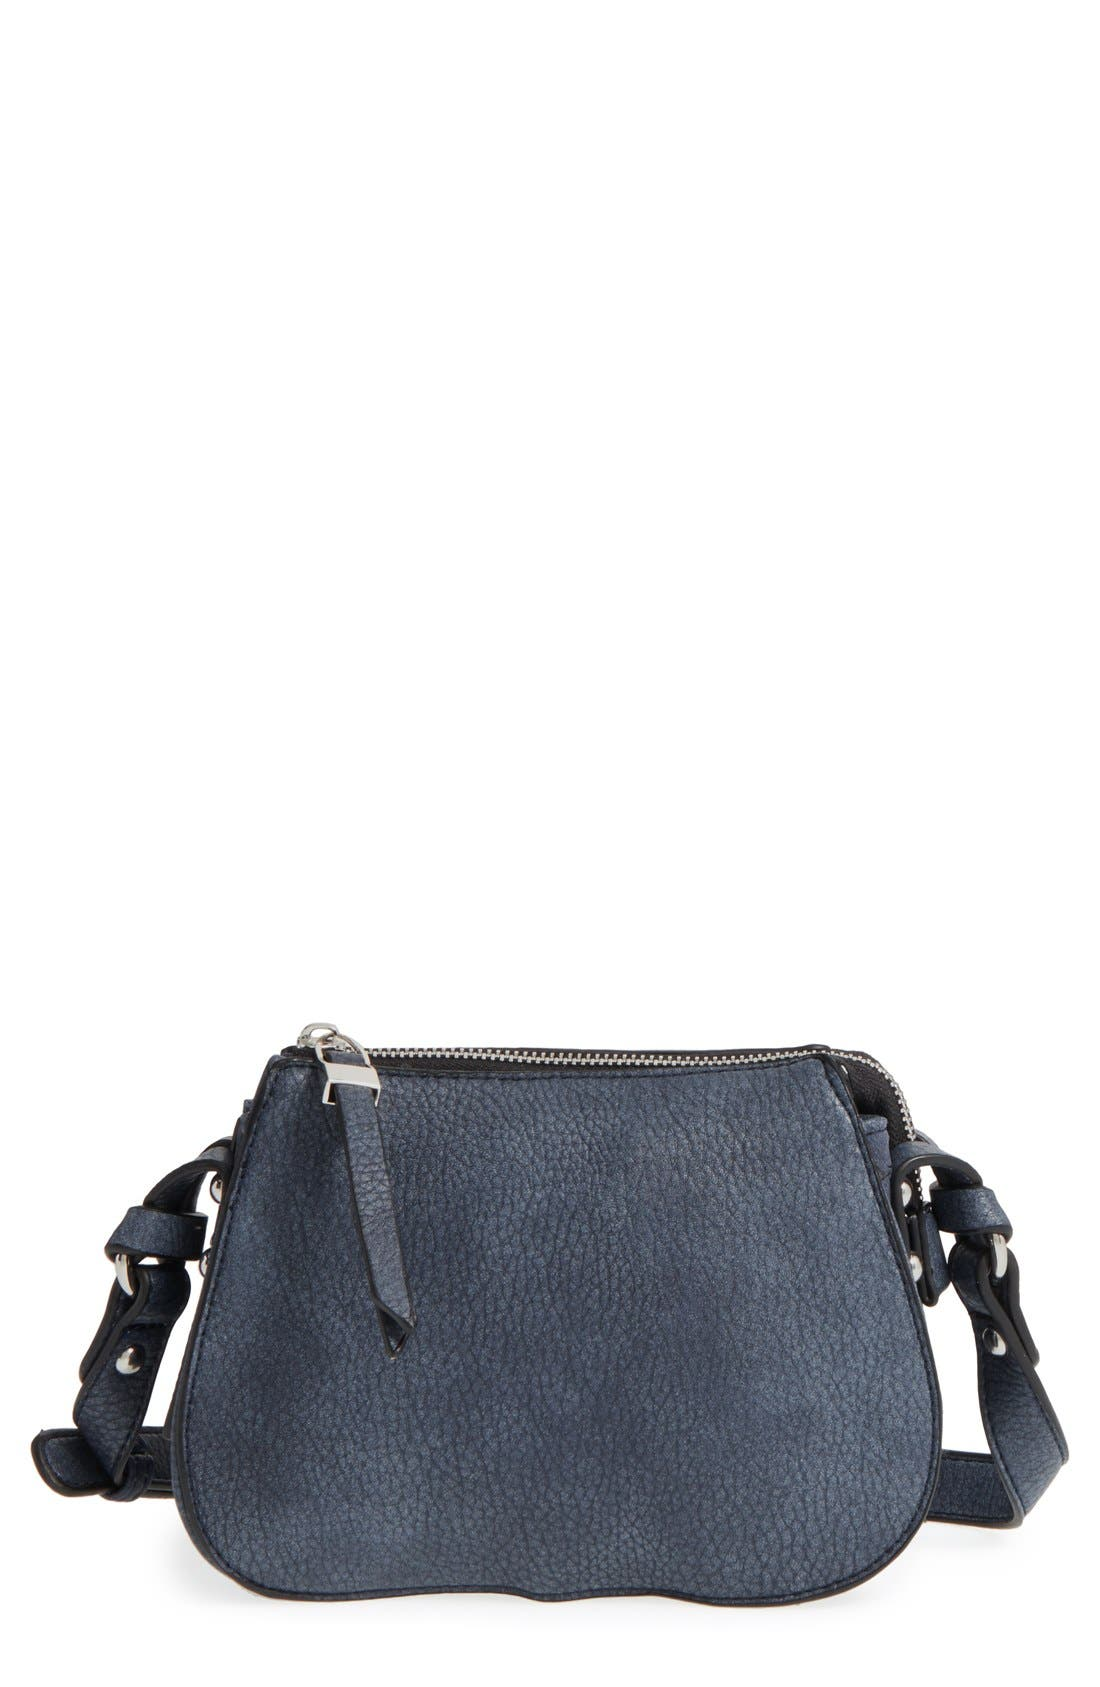 Alternate Image 1 Selected - Phase 3 Faux Leather Crossbody Bag